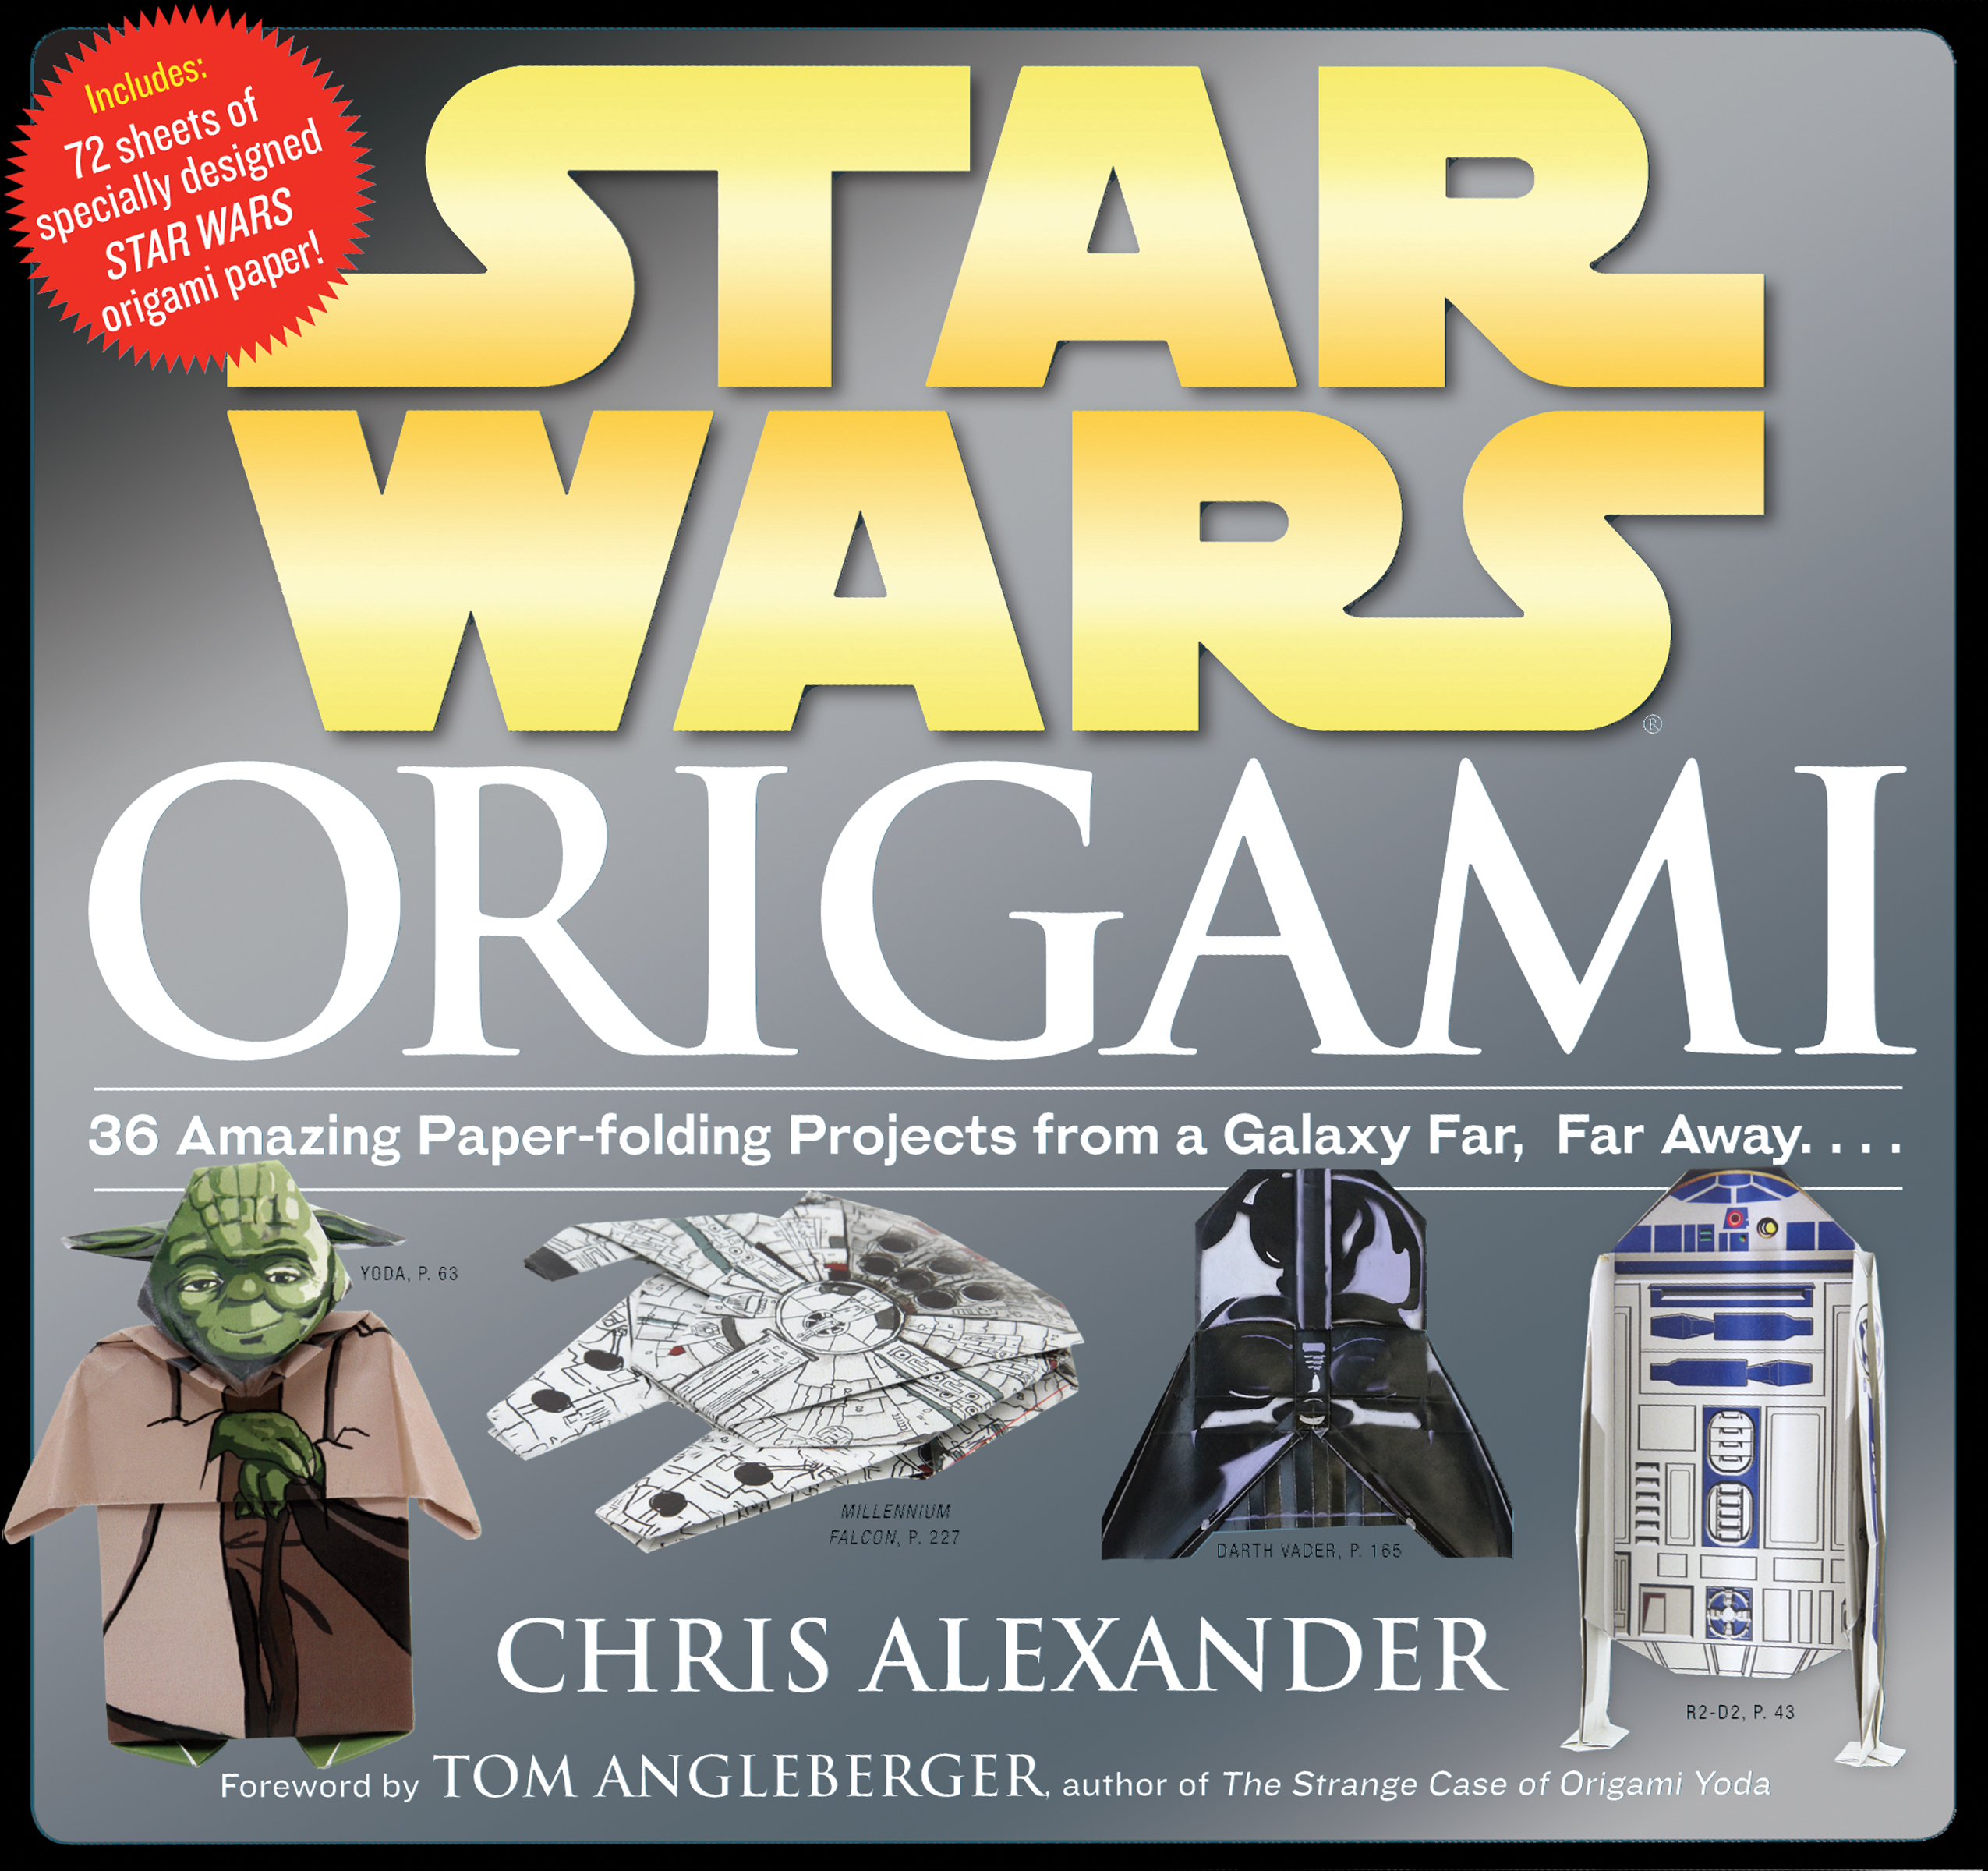 Star Wars Origami : 36 Amazing Paper-folding Projects from a Galaxy Far, Far Away....